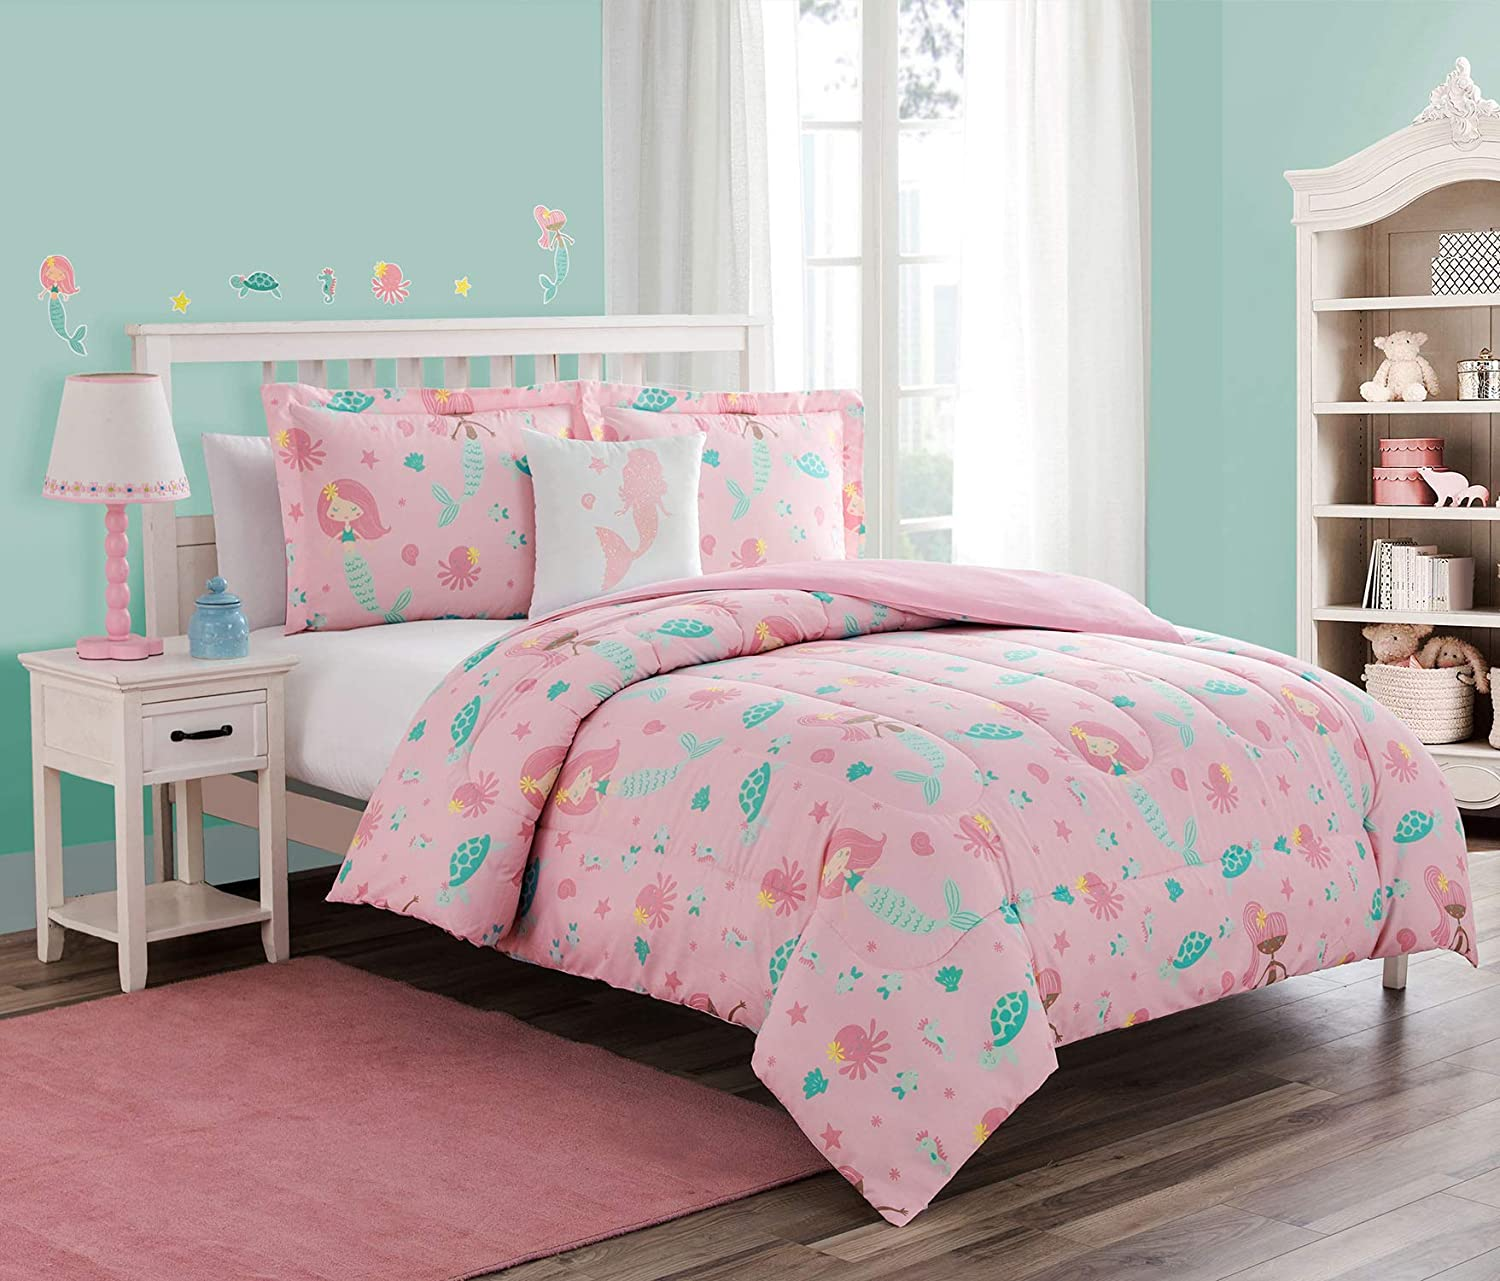 Unbranded Comforter Set, Twin, Pink 3 Each